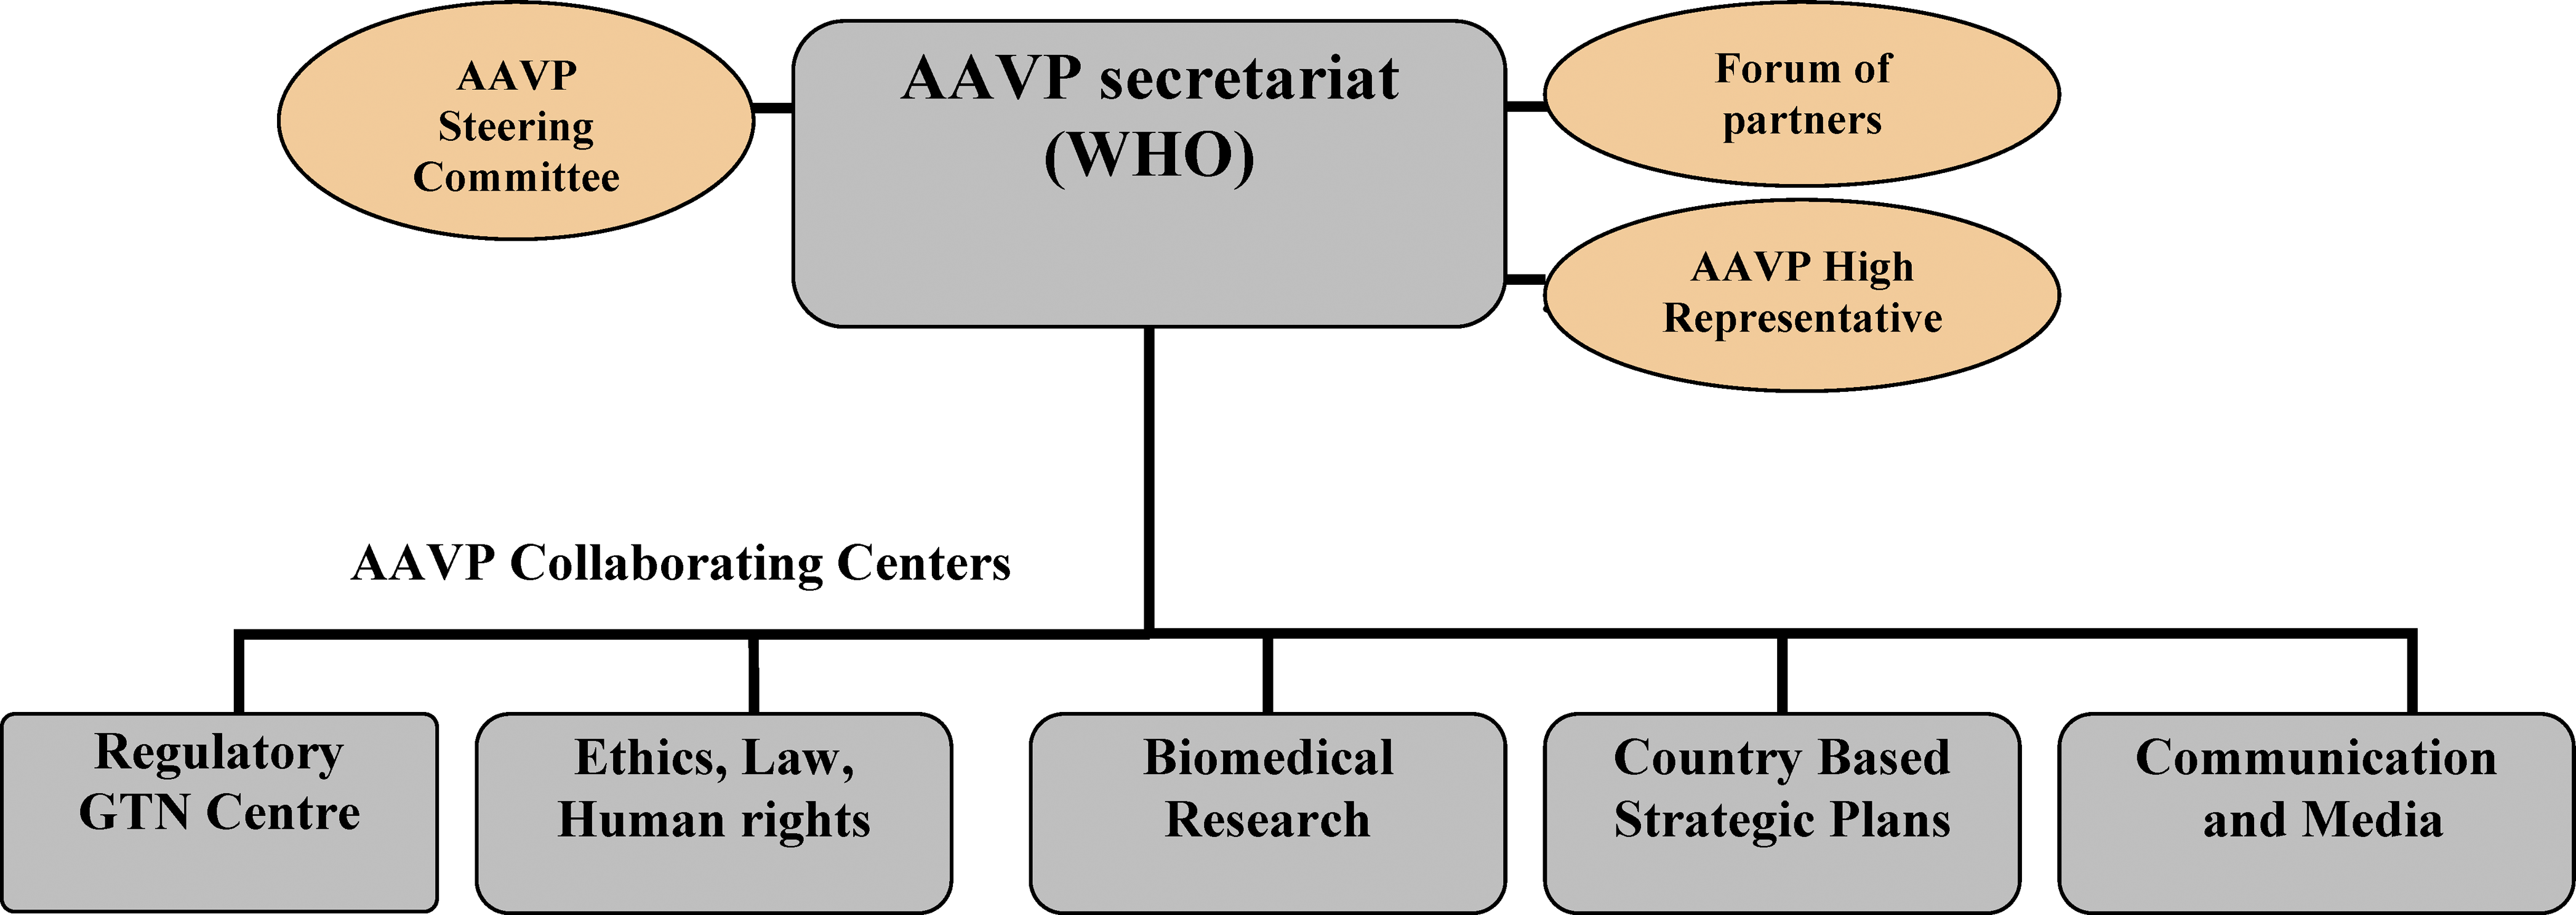 The AAVP Structure